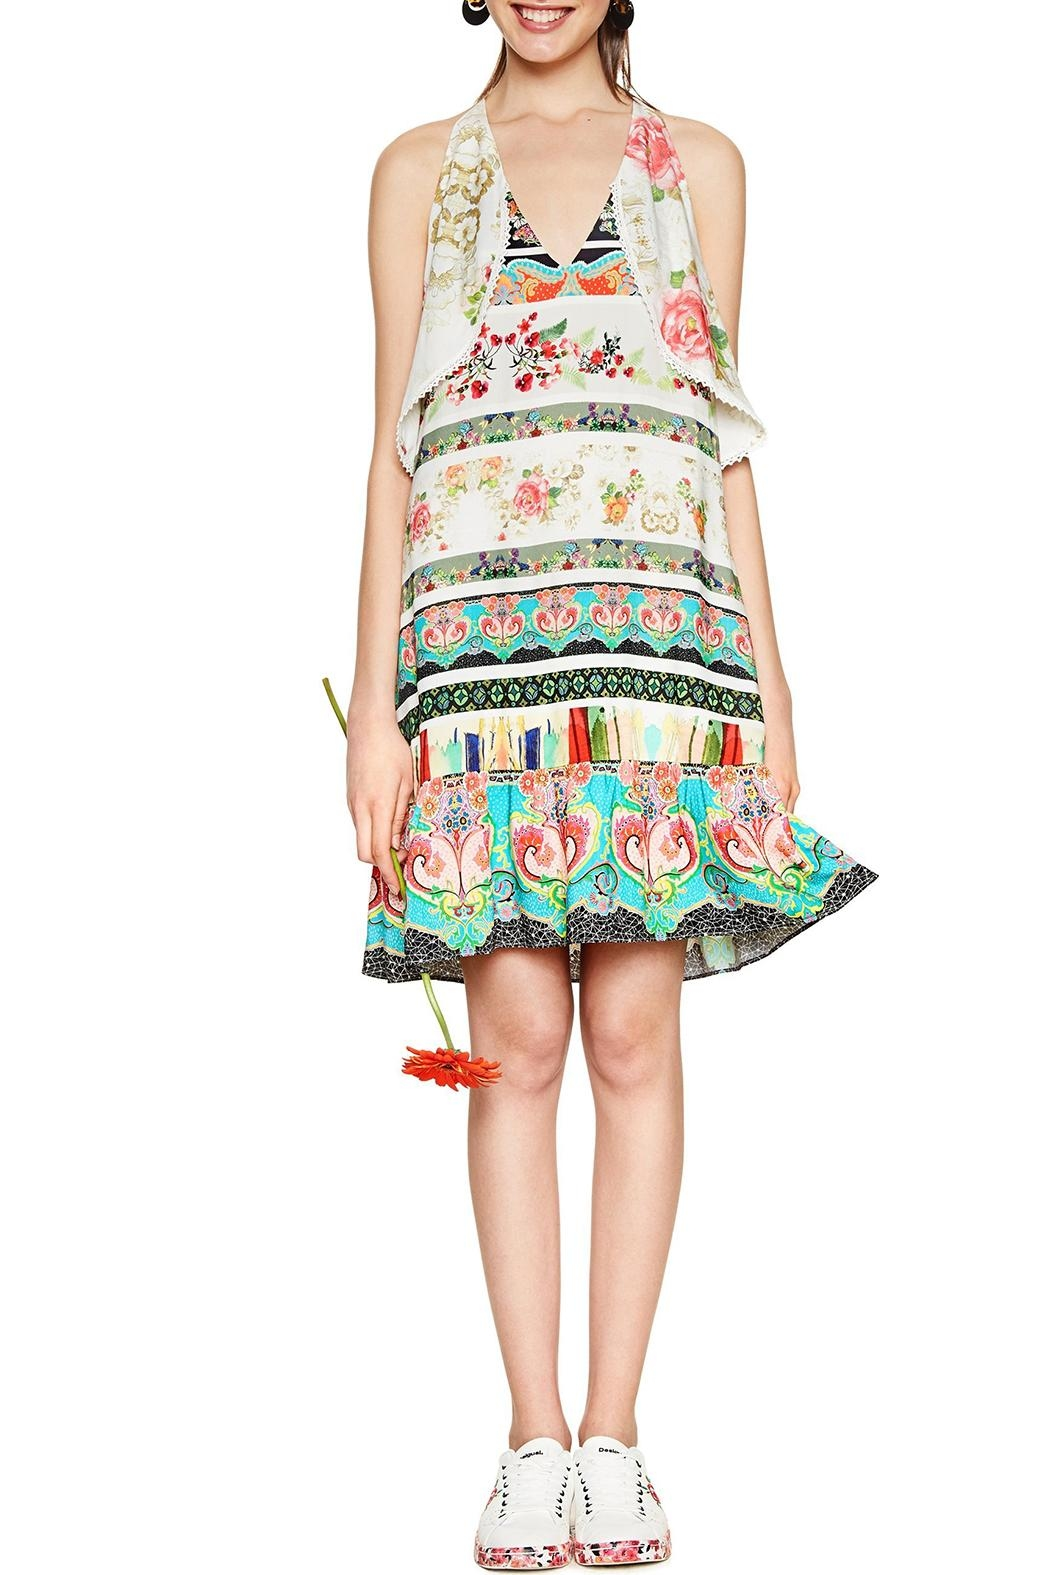 DESIGUAL Kilian Dress - Main Image